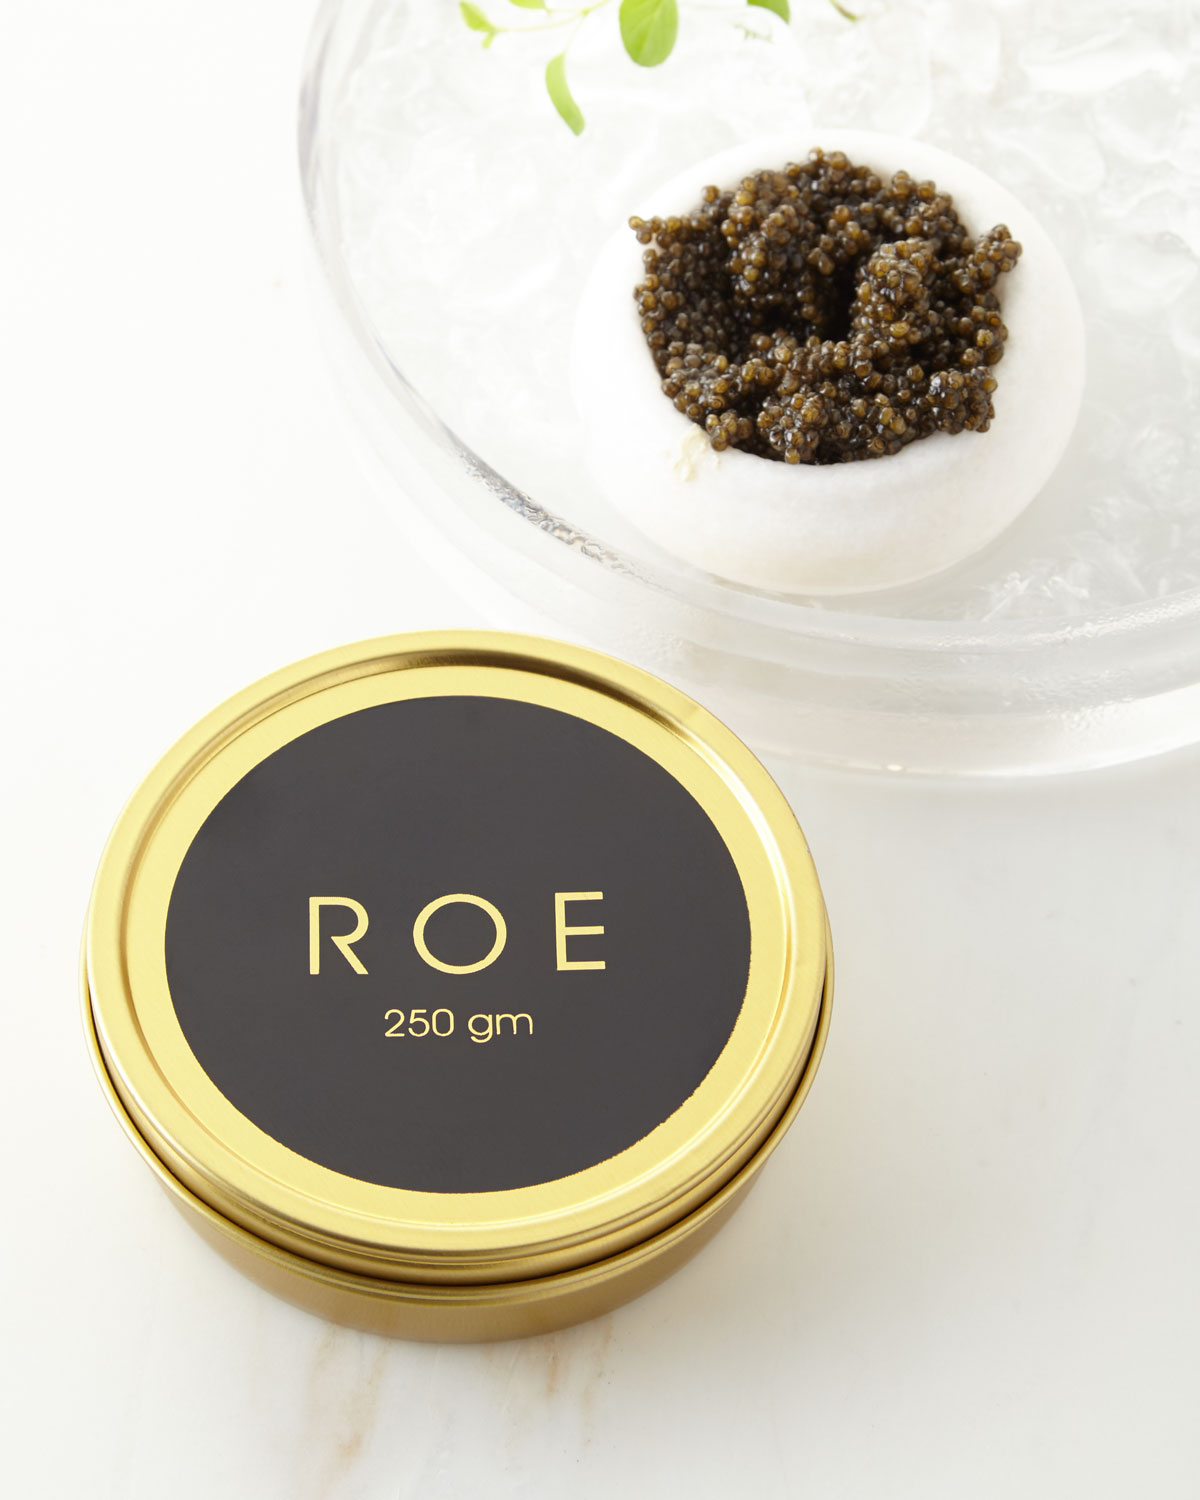 Roe Sturgeon Caviar, For 8+ People